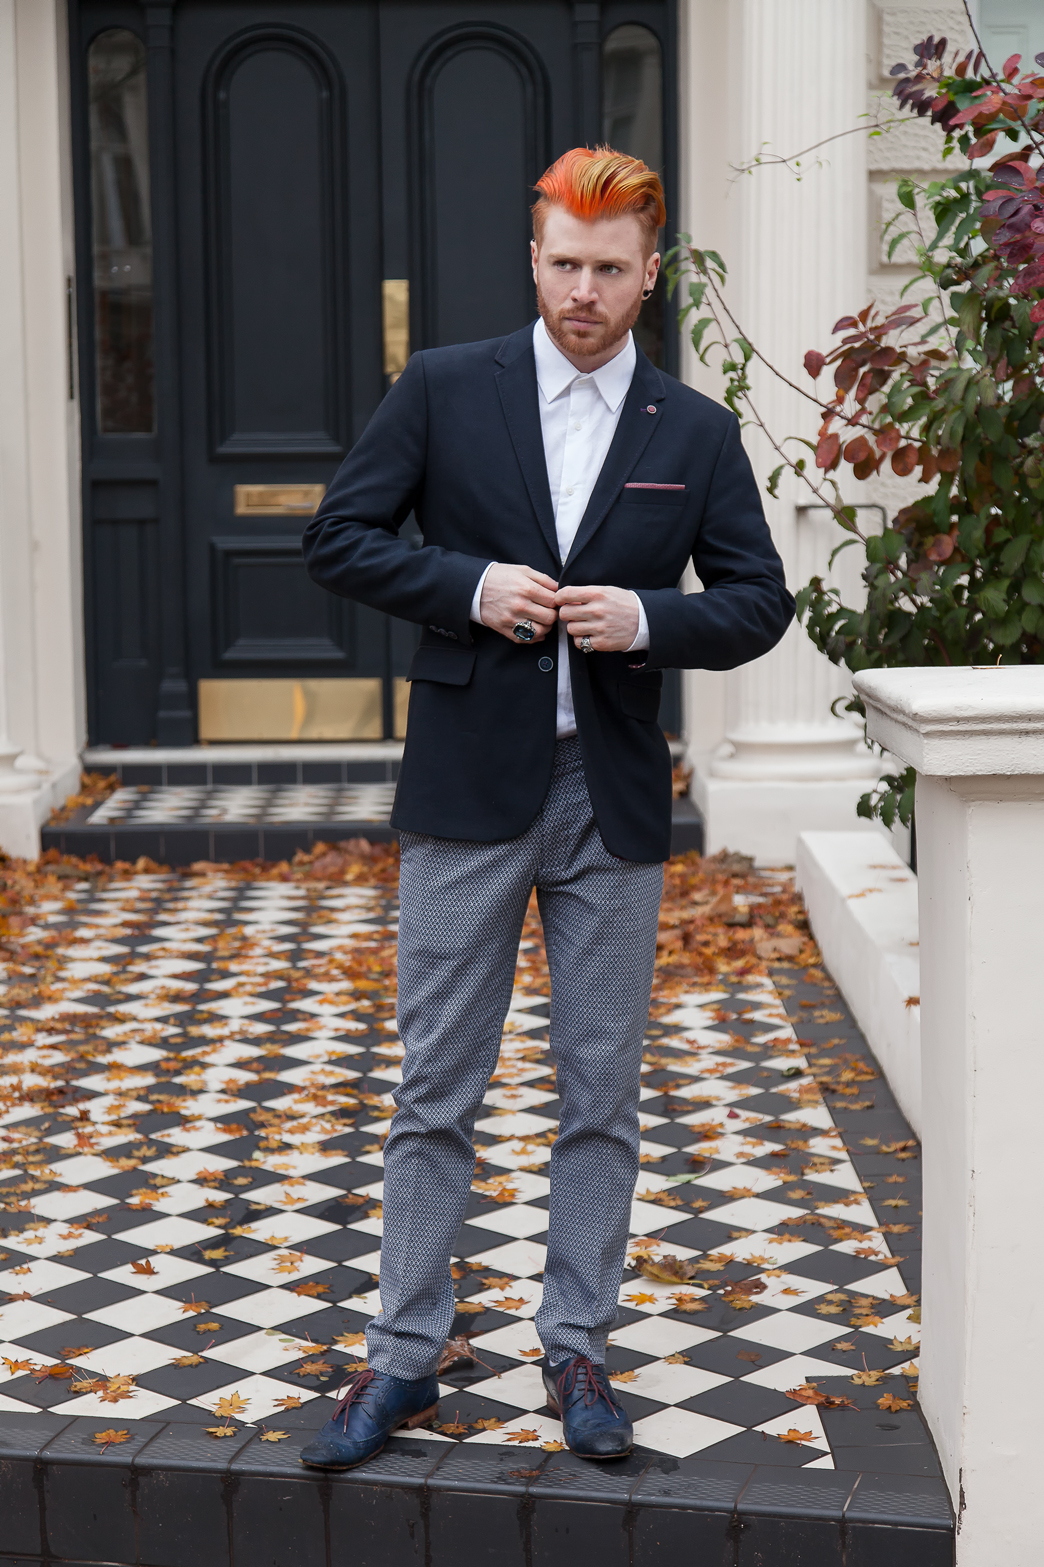 Stylish man in a suit